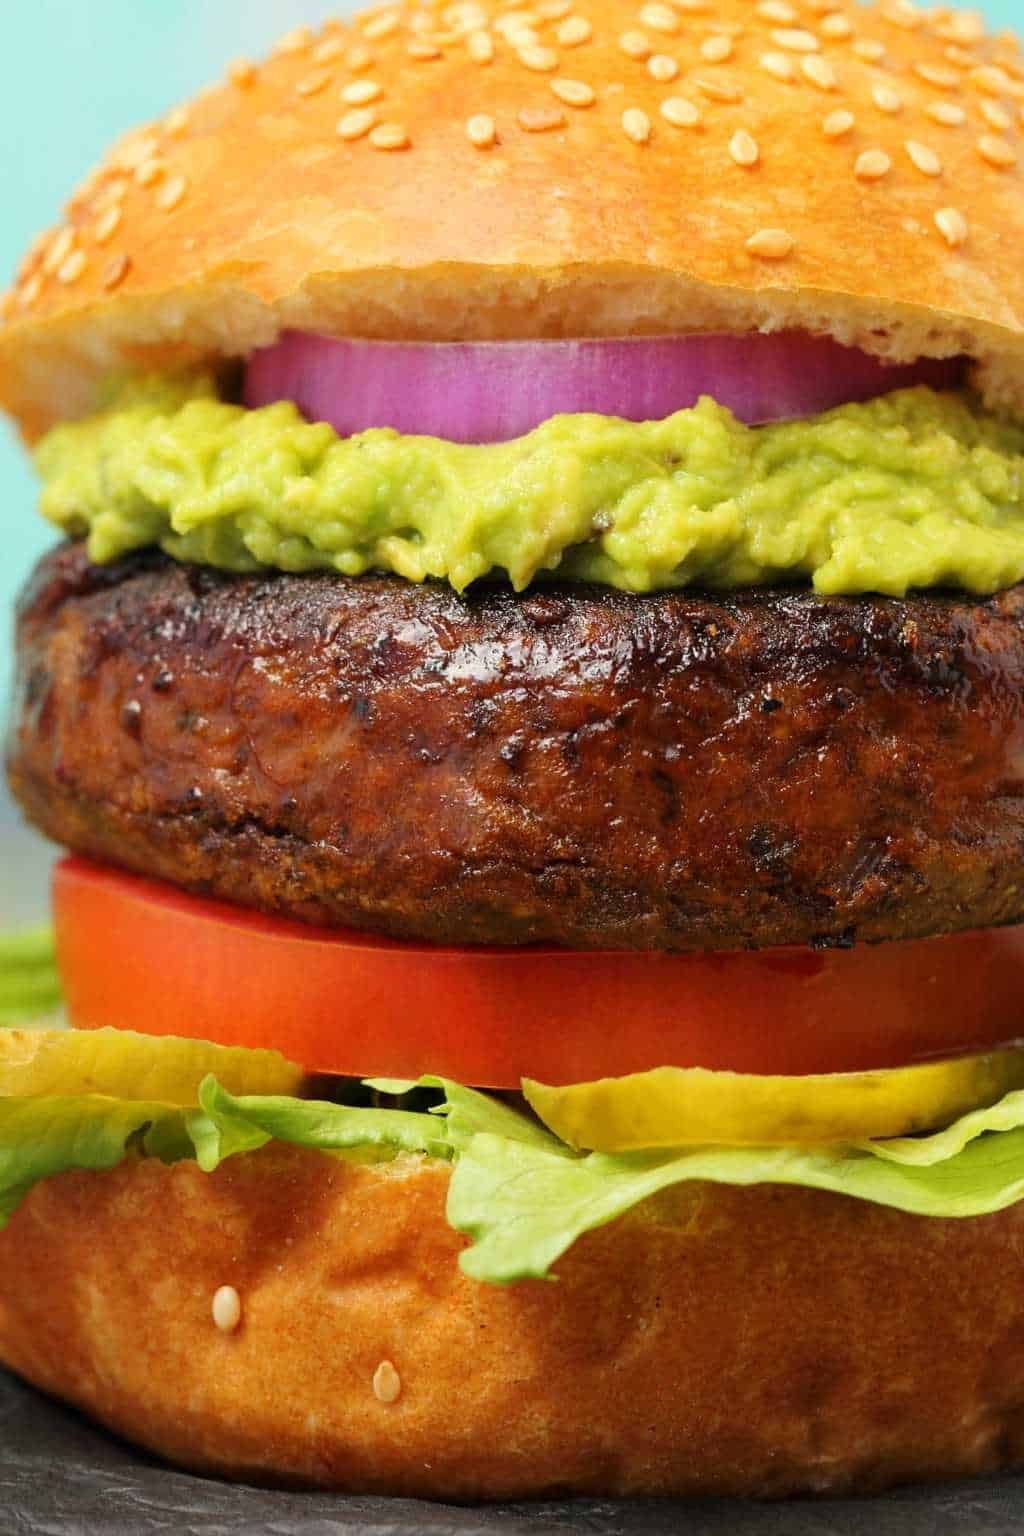 Black bean burger with burger bun, lettuce, pickles, tomato, guacamole and red onion.